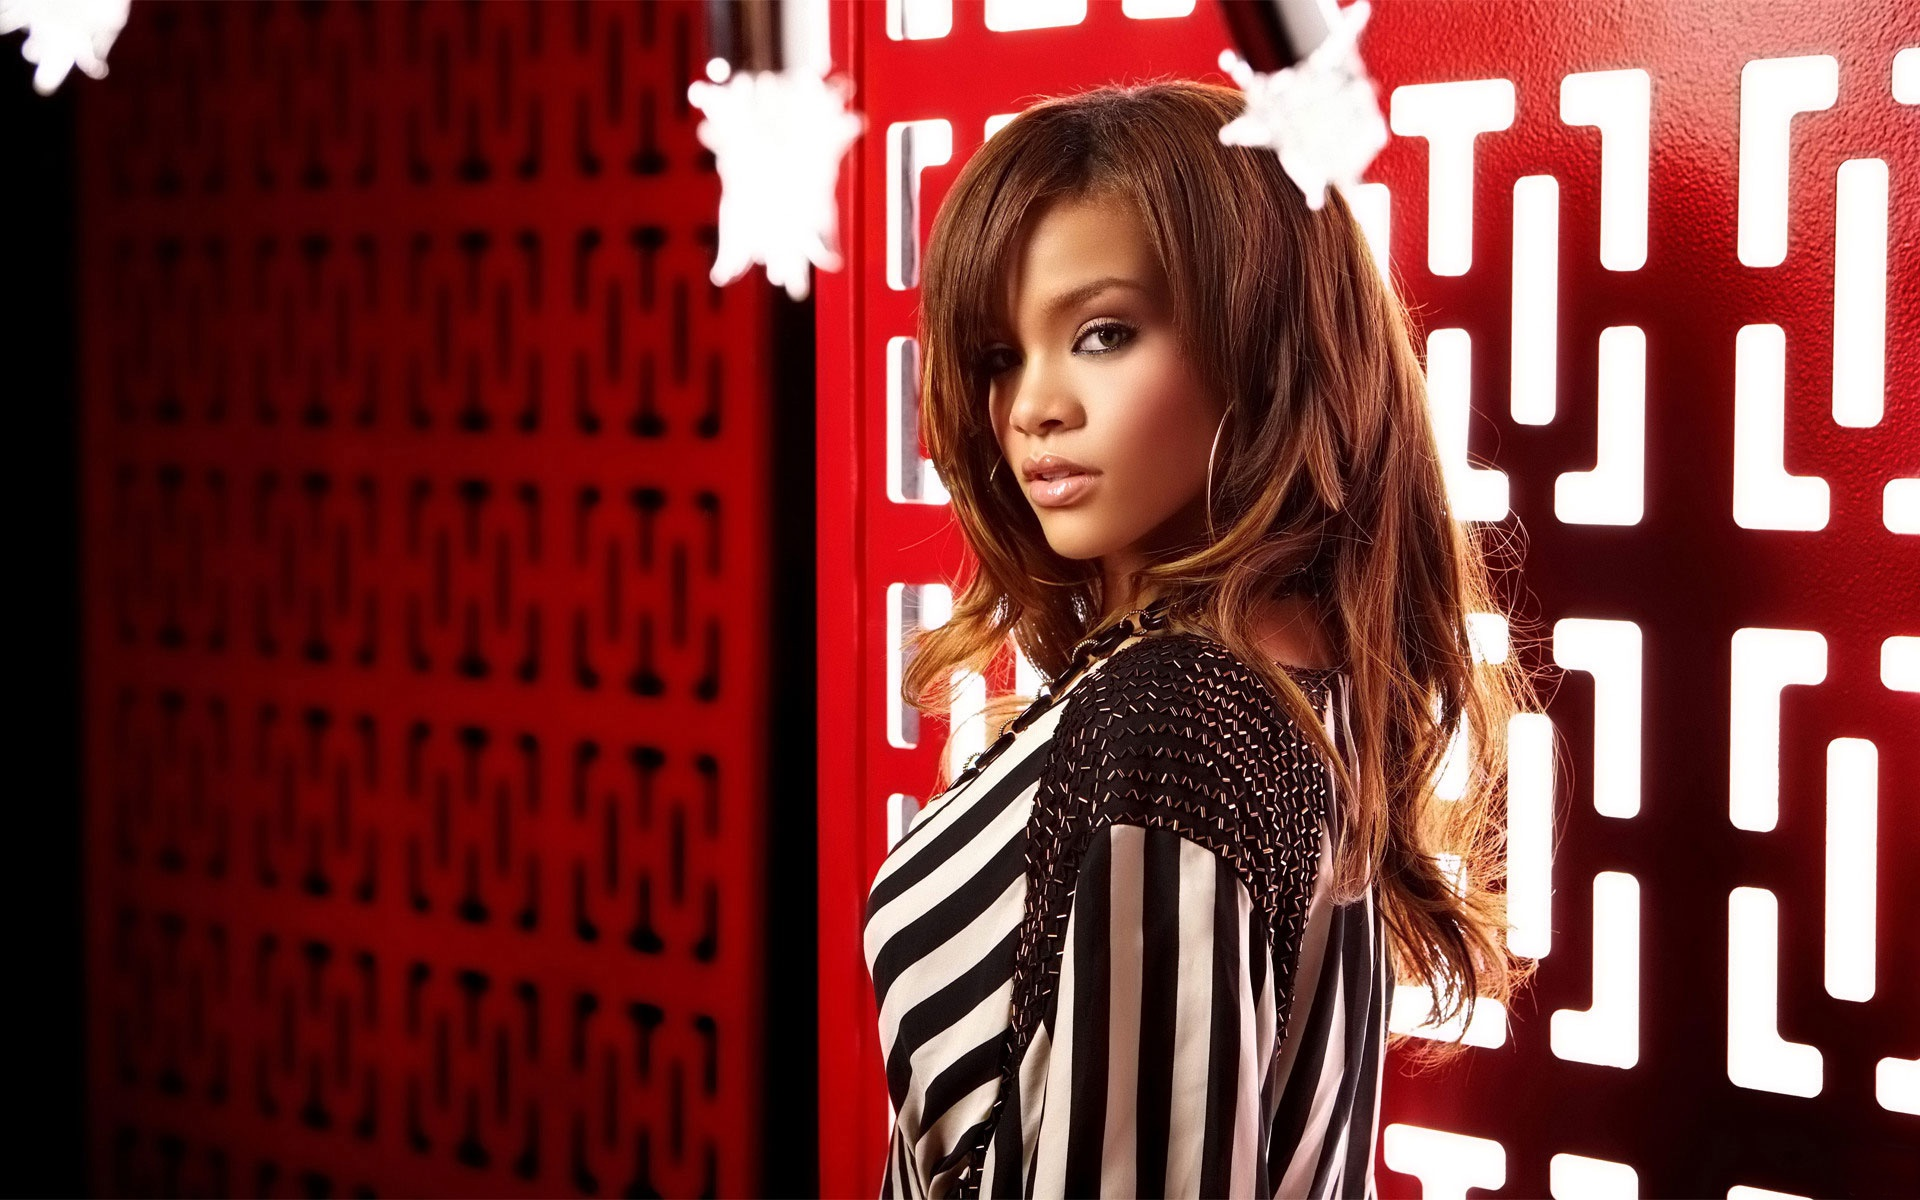 rihanna wallpapers hd A2